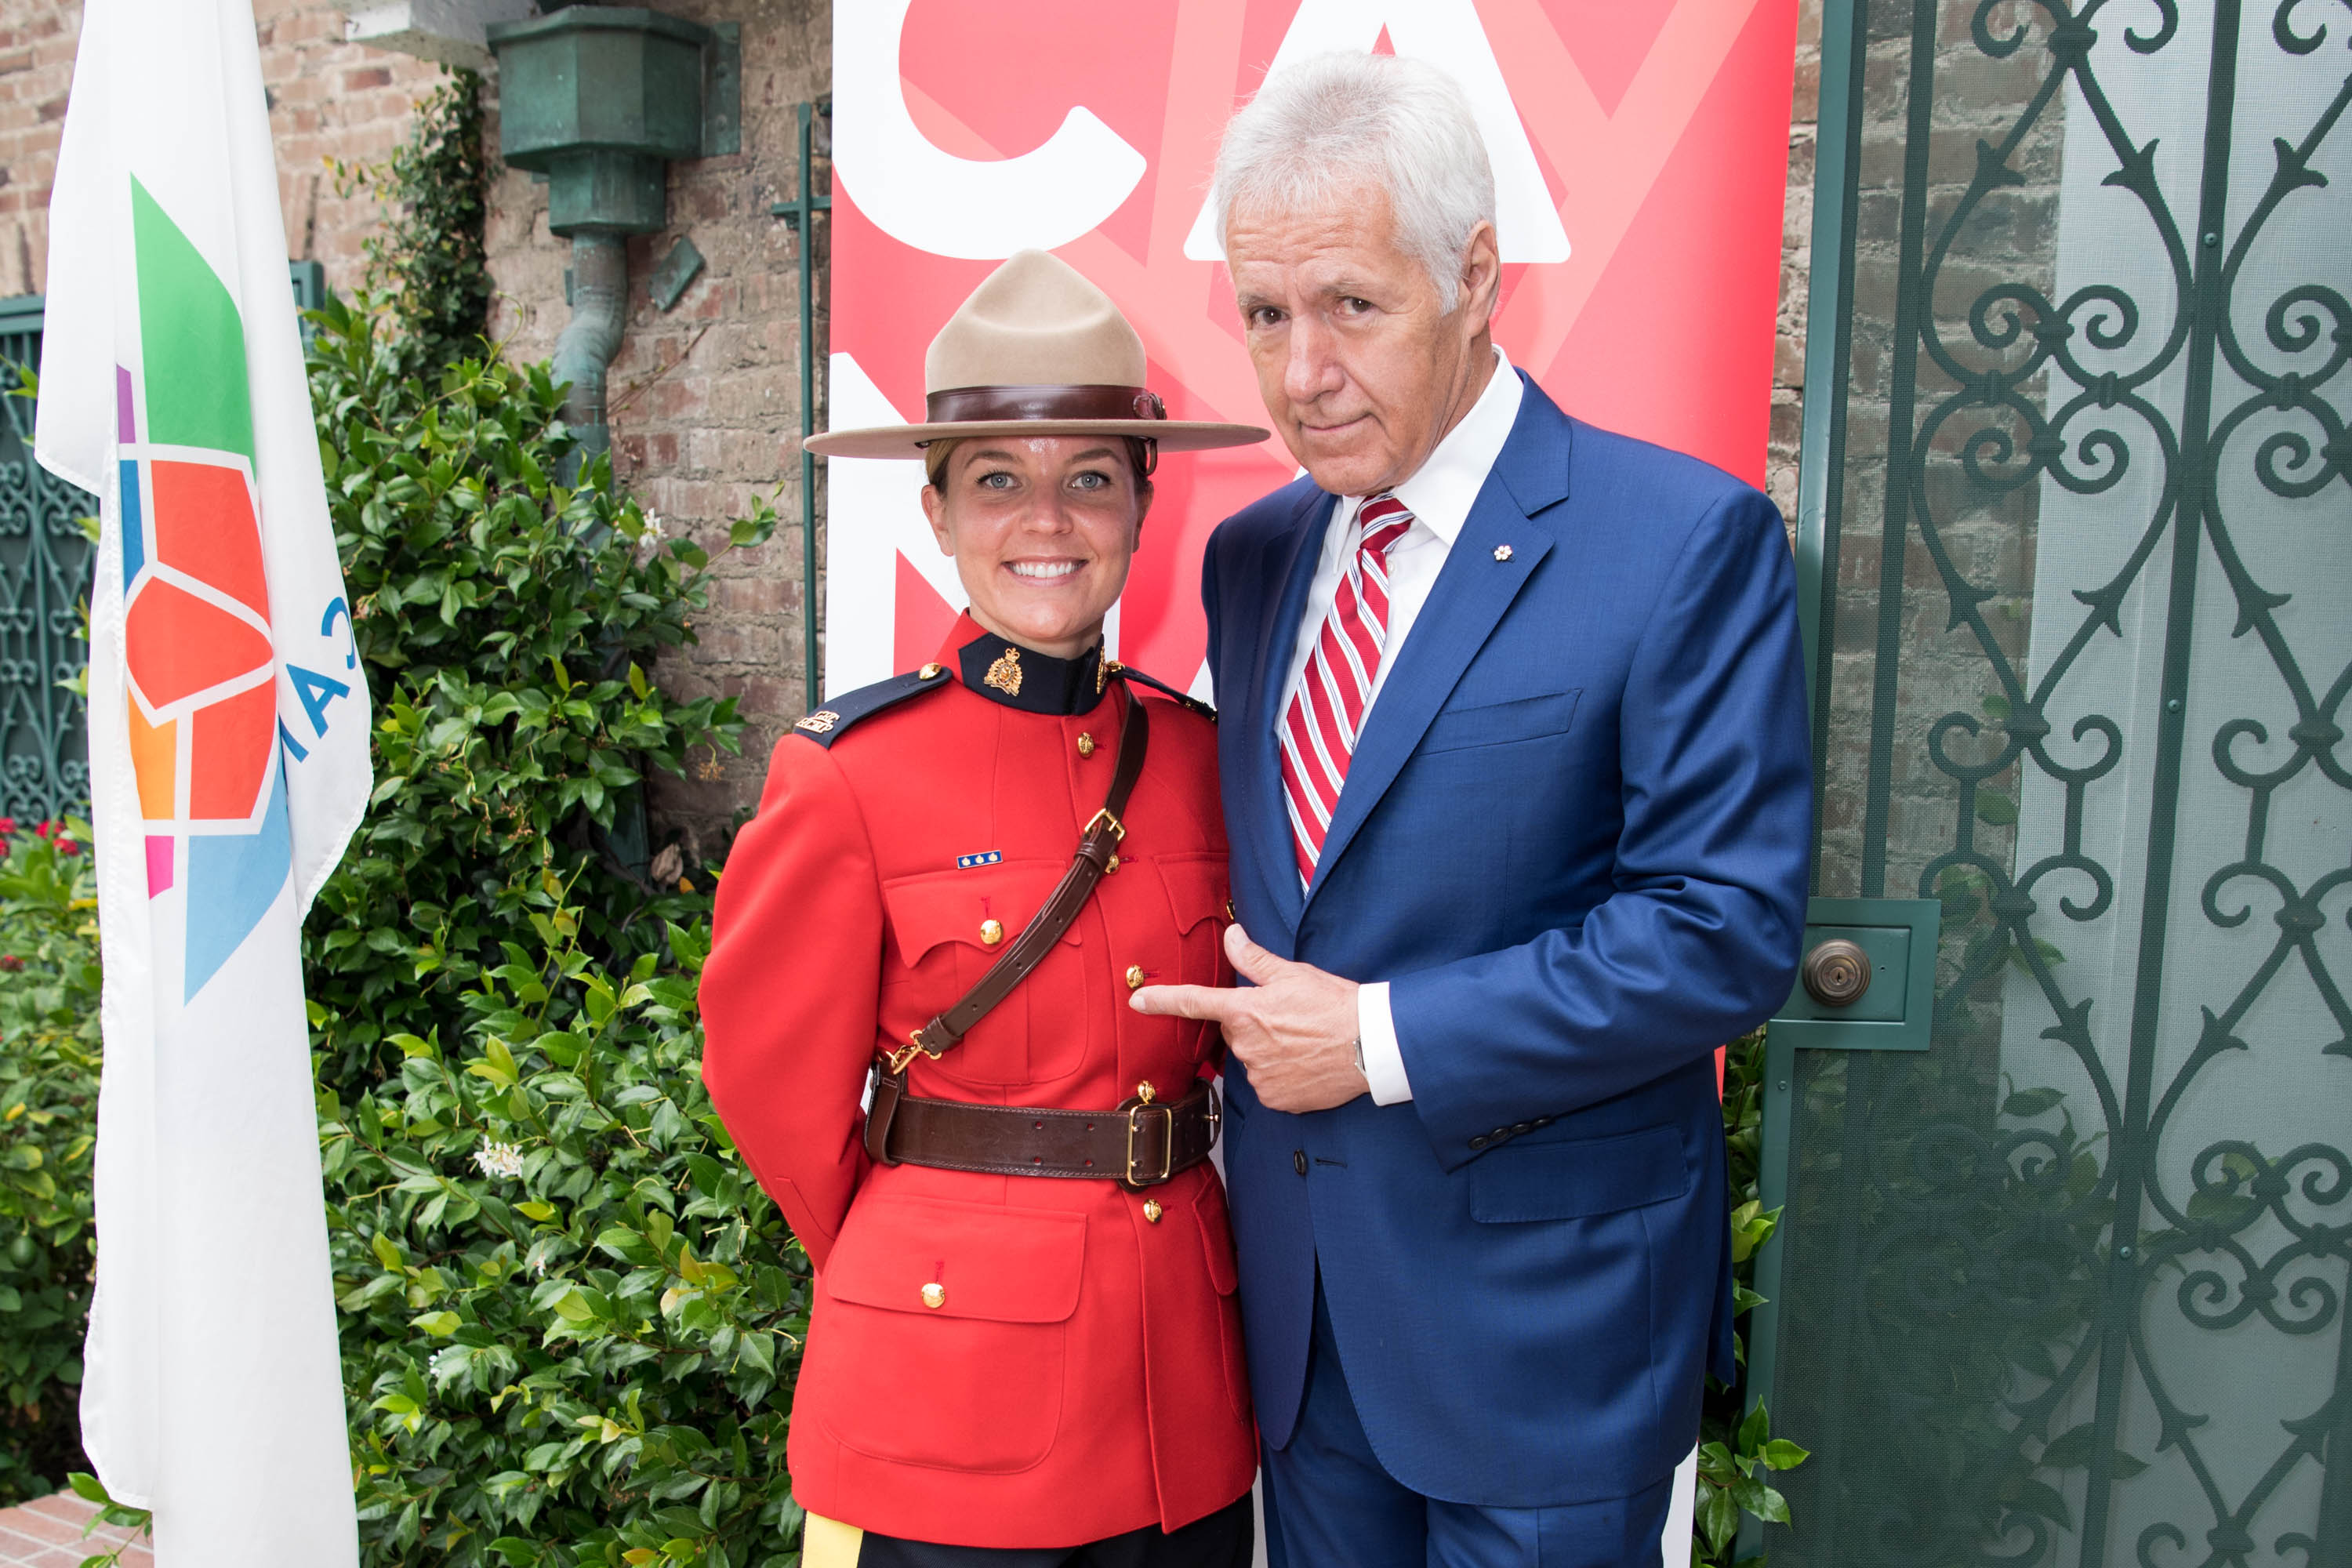 TV personality Alex Trebek attends the 150th anniversary of Canada's Confederation at the Official Residence of Canada on June 30, 2017 in Los Angeles, Calif.